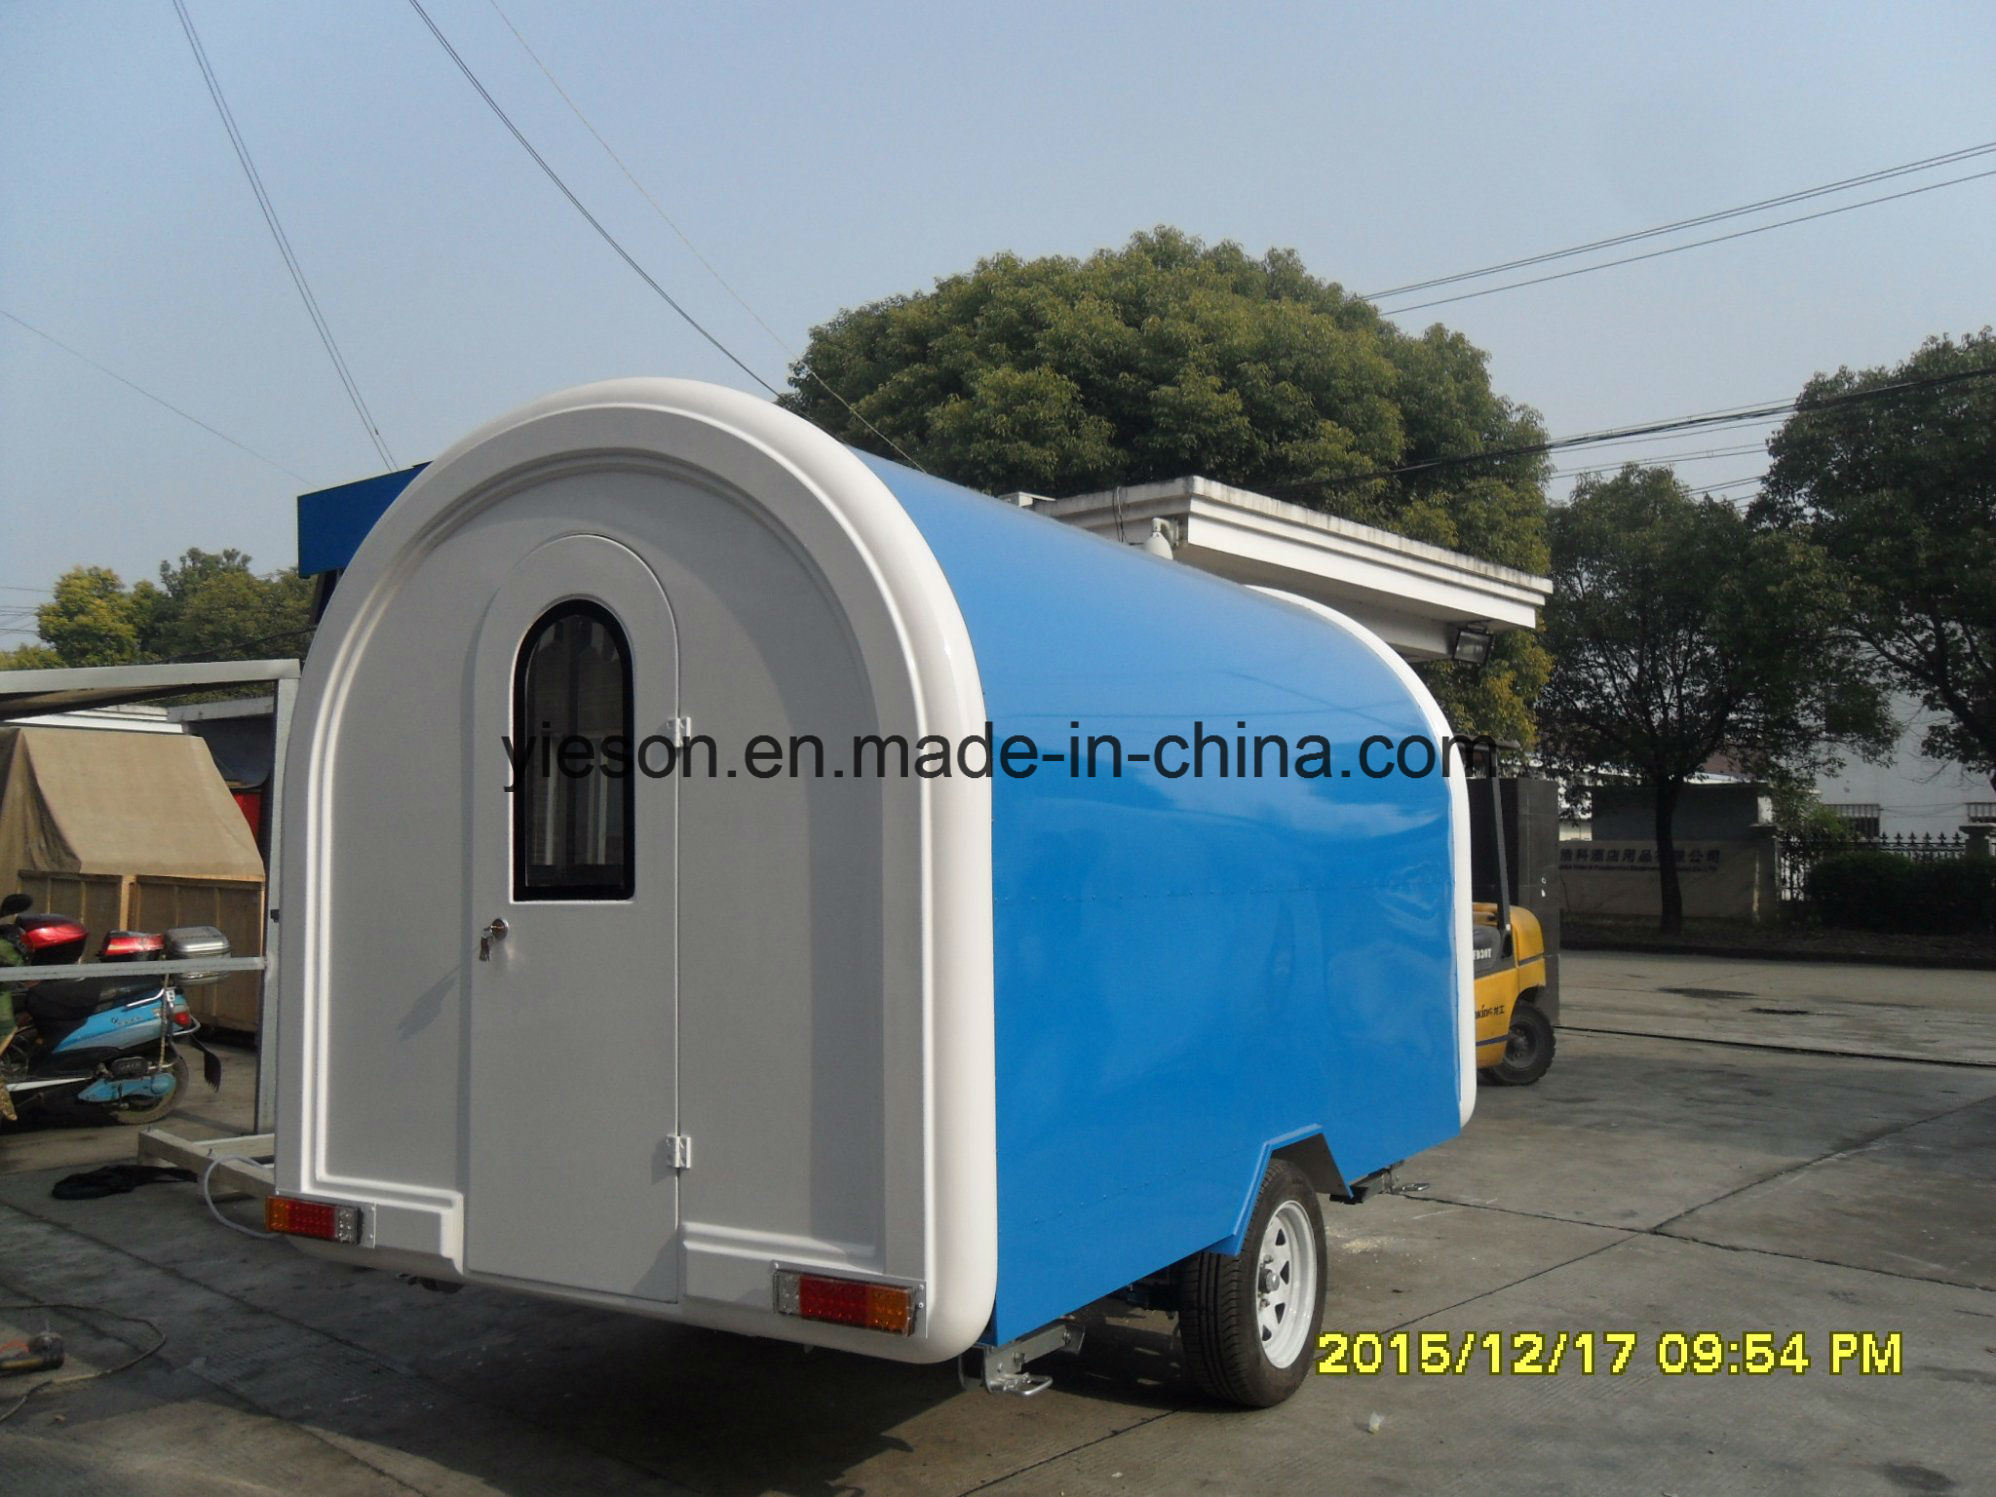 High Quality Fast Food Ice Cream Vending Trailer